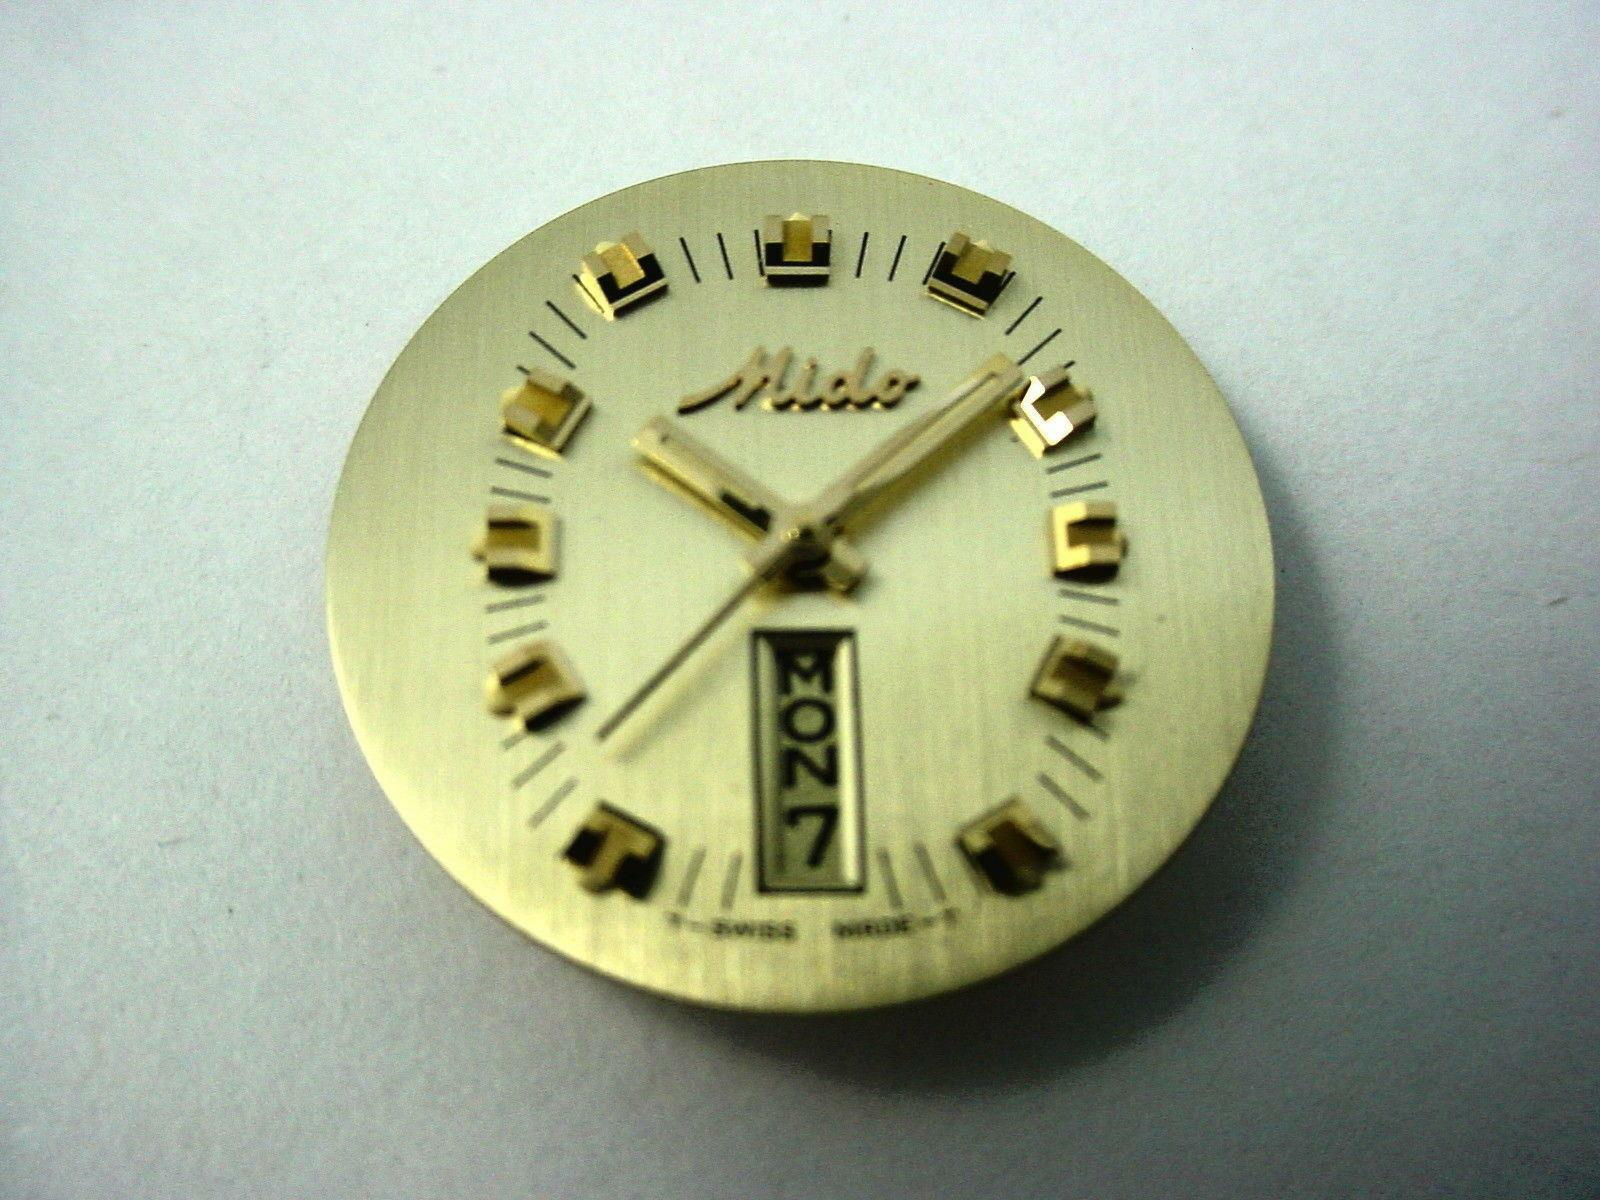 Gold Mido Vintage Watch Dial 21.3mm Day Date Window Hands Gold Square Markers